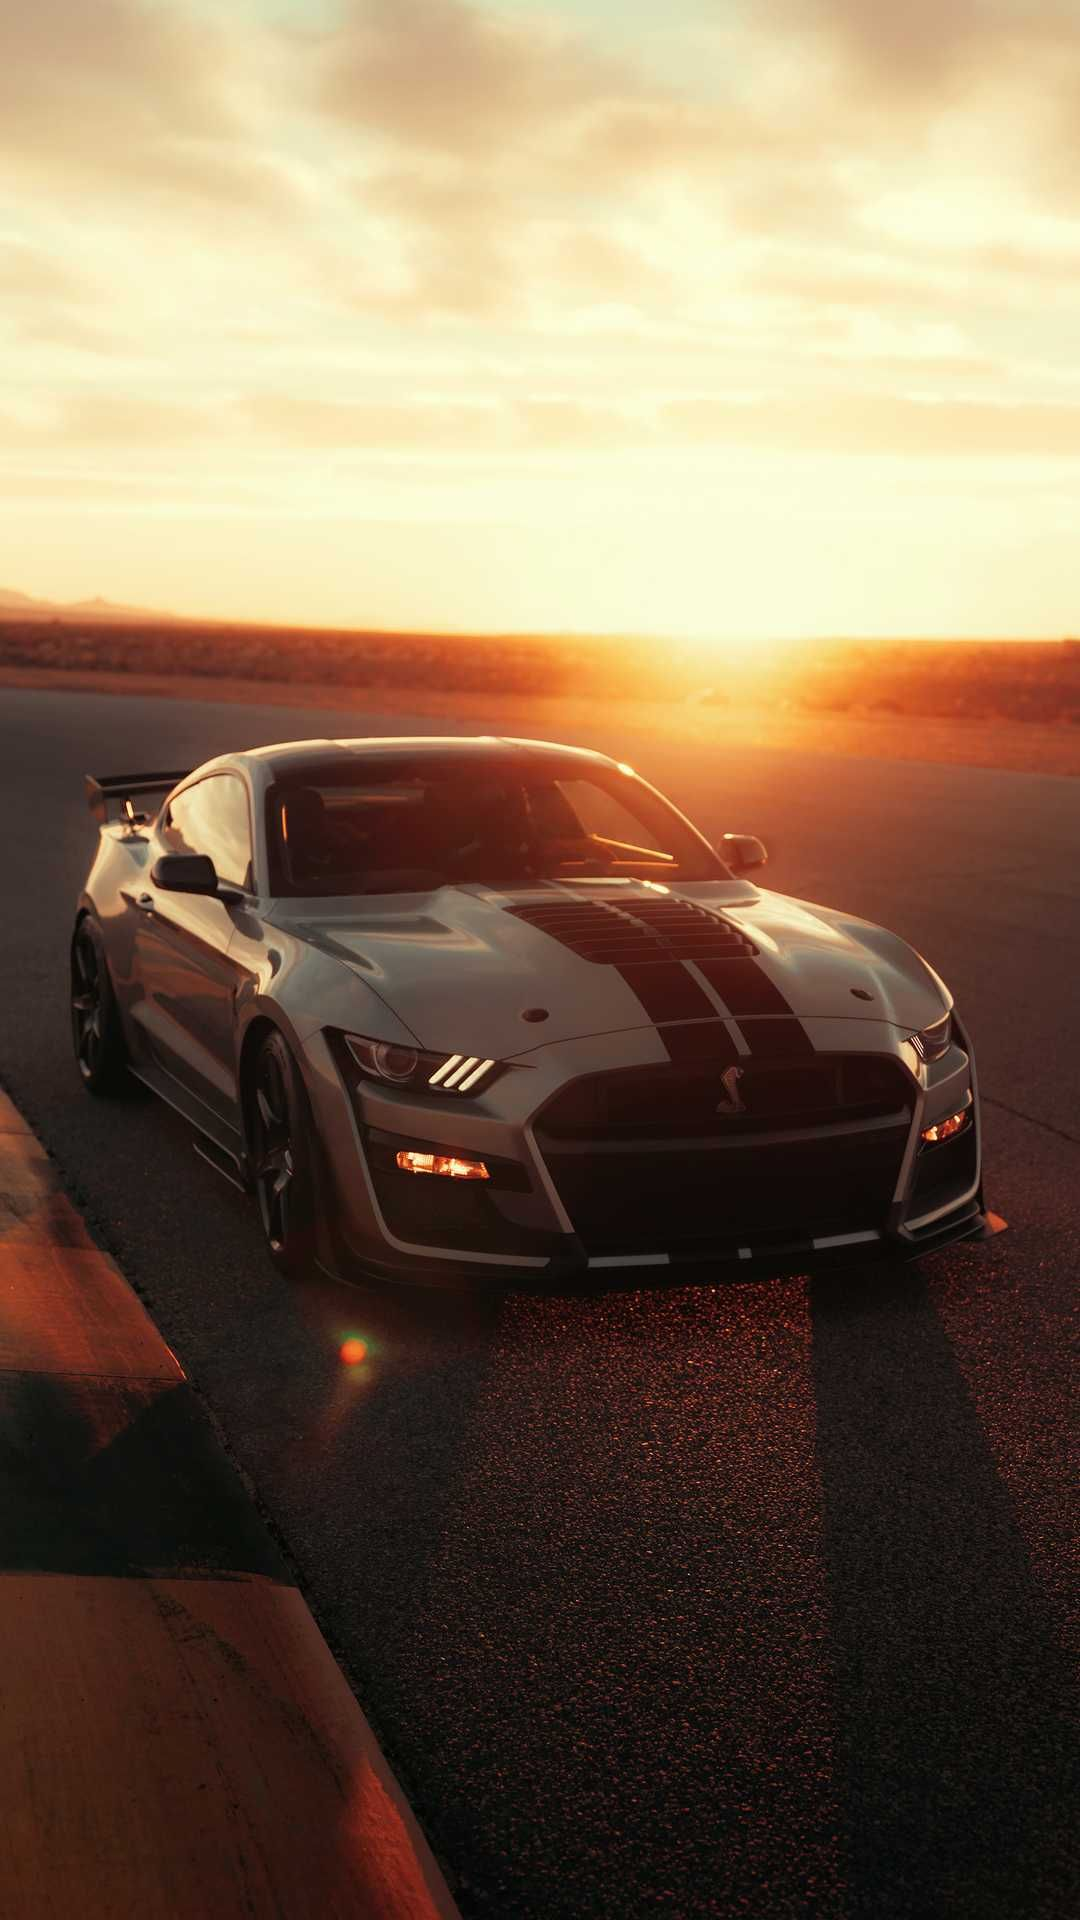 New 2020 Ford Mustang Shelby Gt500 Most Powerful Ford Ever Ford Mustang Shelby Gt500 Ford Mustang Shelby Ford Mustang Wallpaper